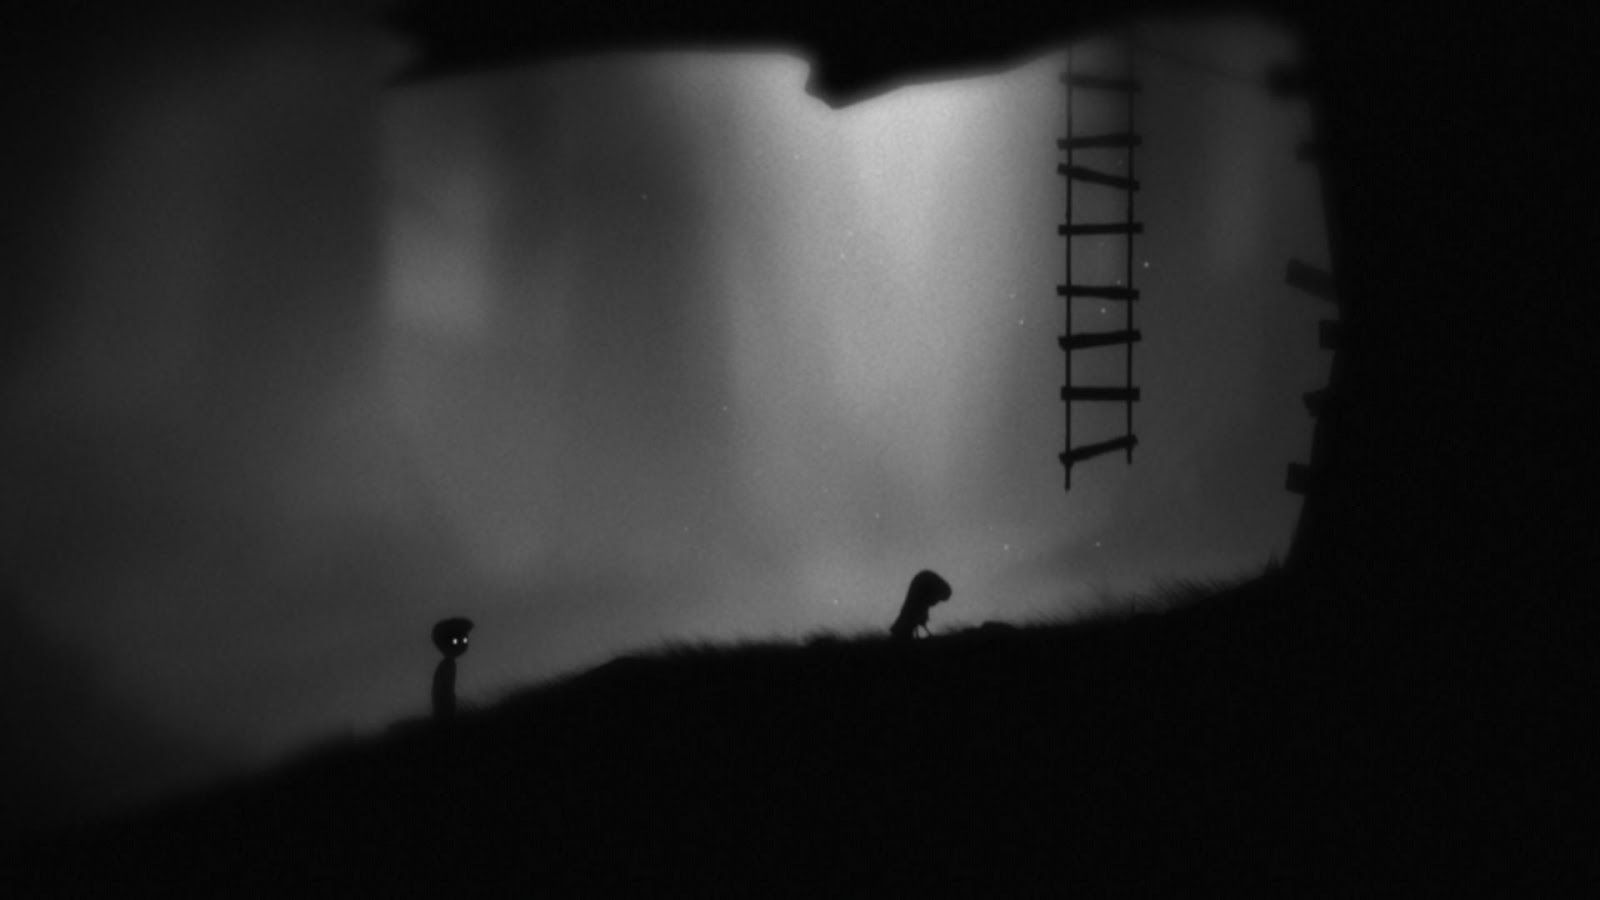 limbo full game free download for pc